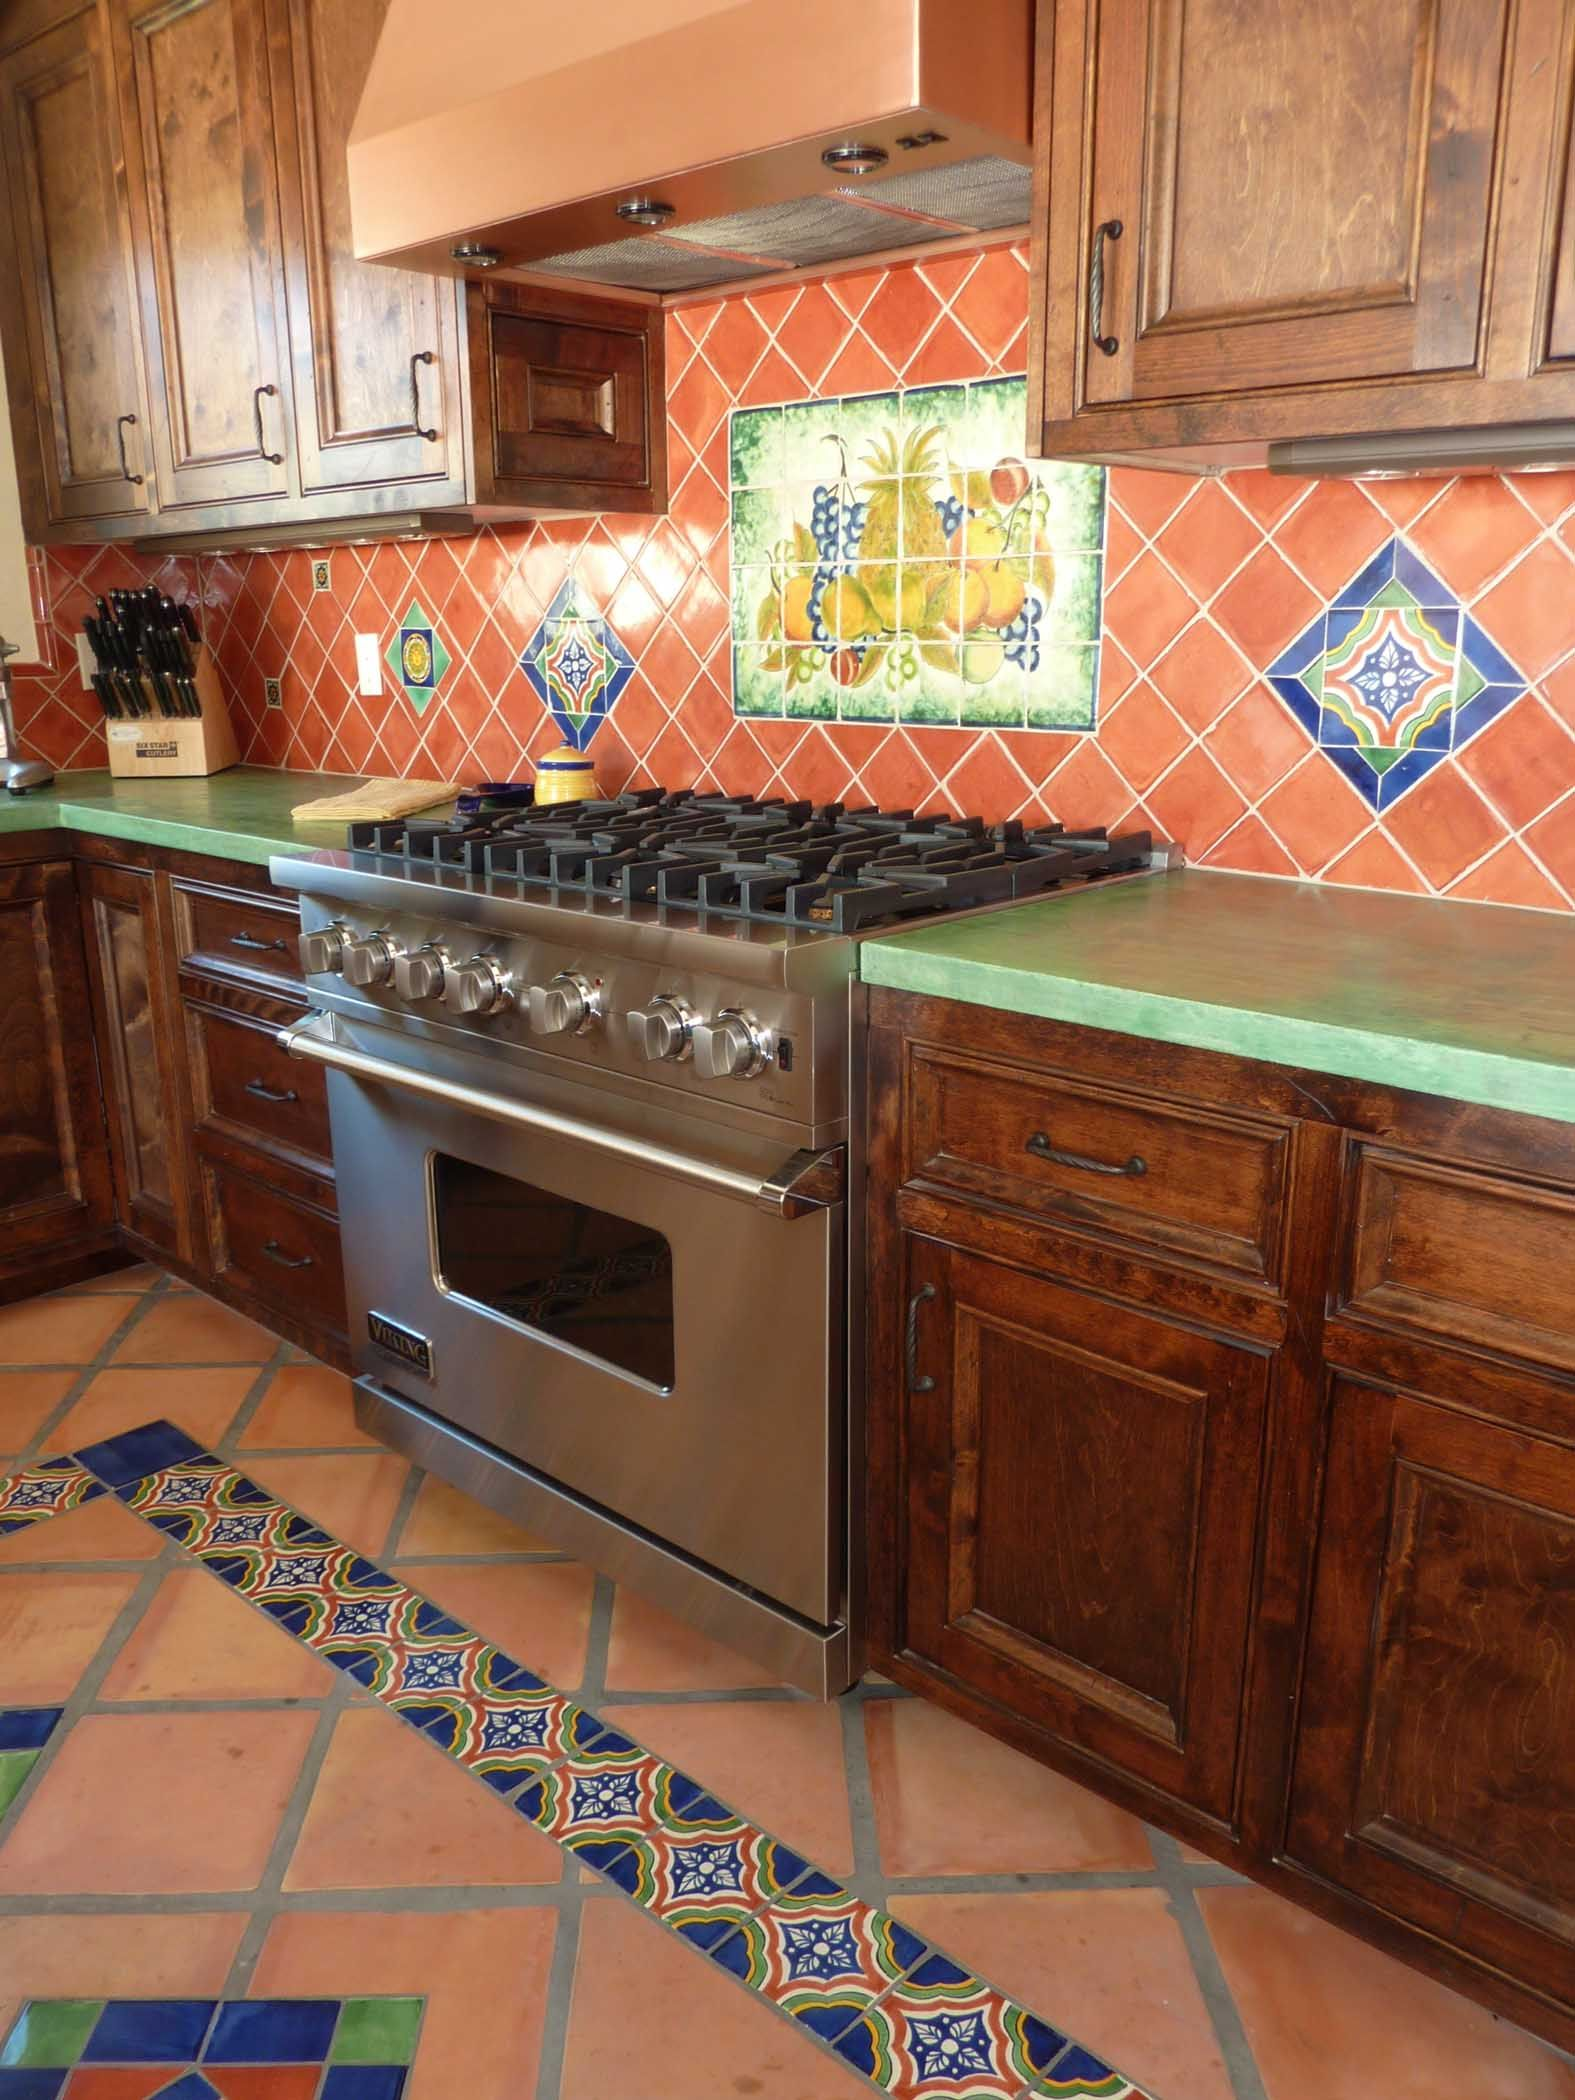 mexican backsplash tiles kitchen marsh cabinets remodel using by kristiblackdesigns